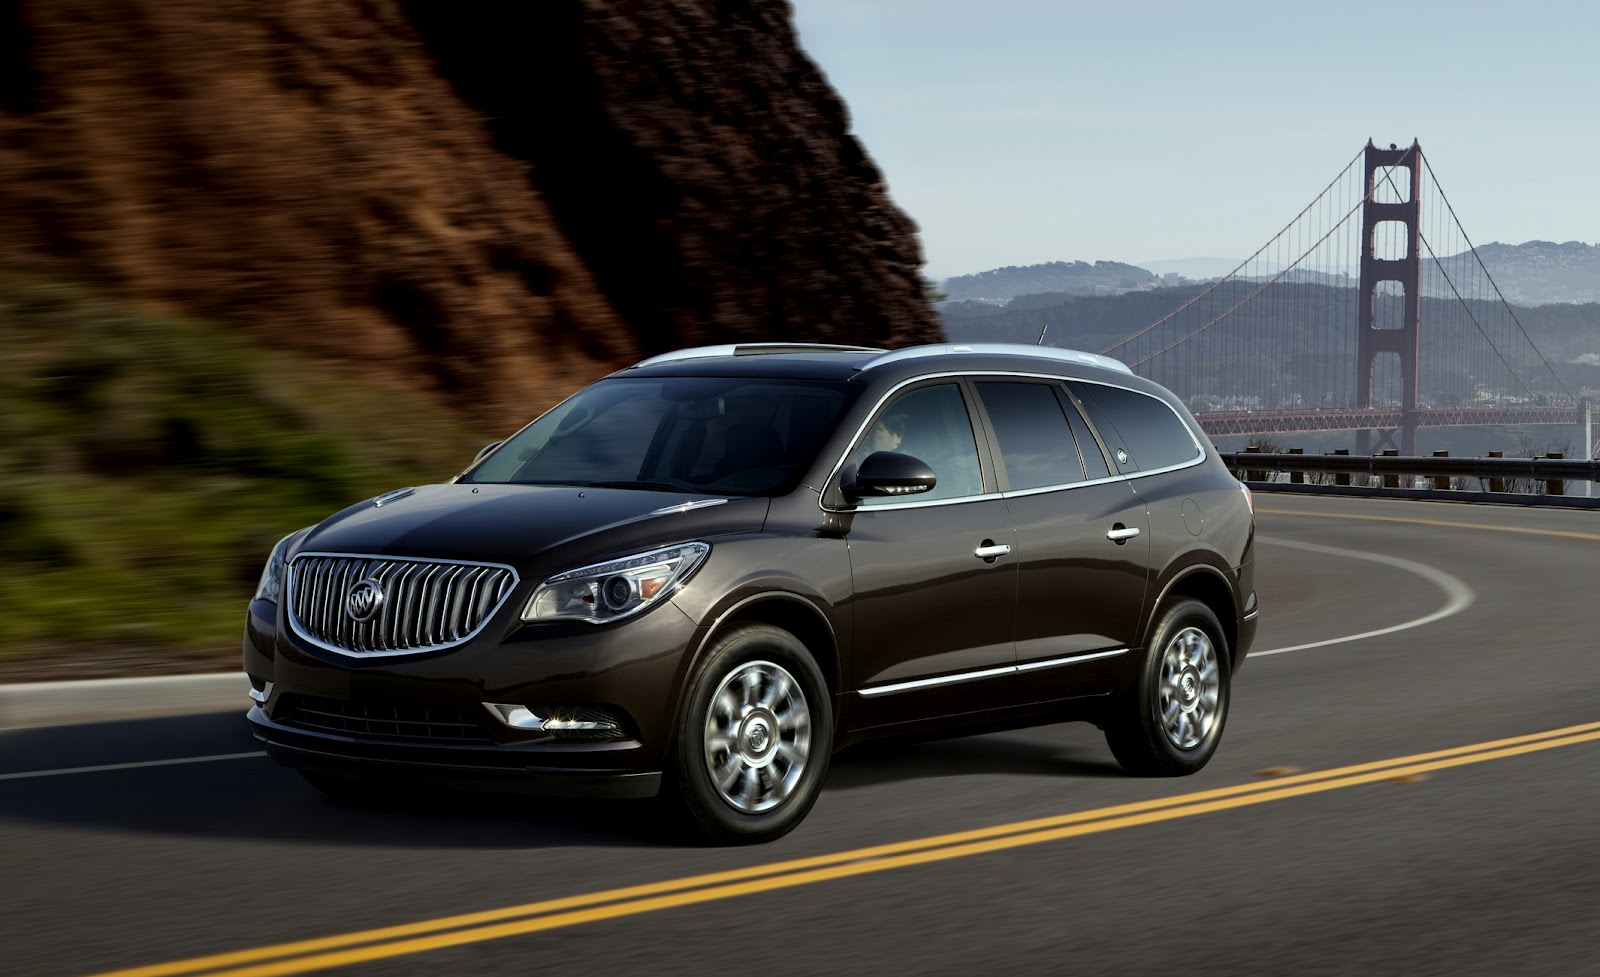 buick enclave body style change in 2015 autos post. Black Bedroom Furniture Sets. Home Design Ideas